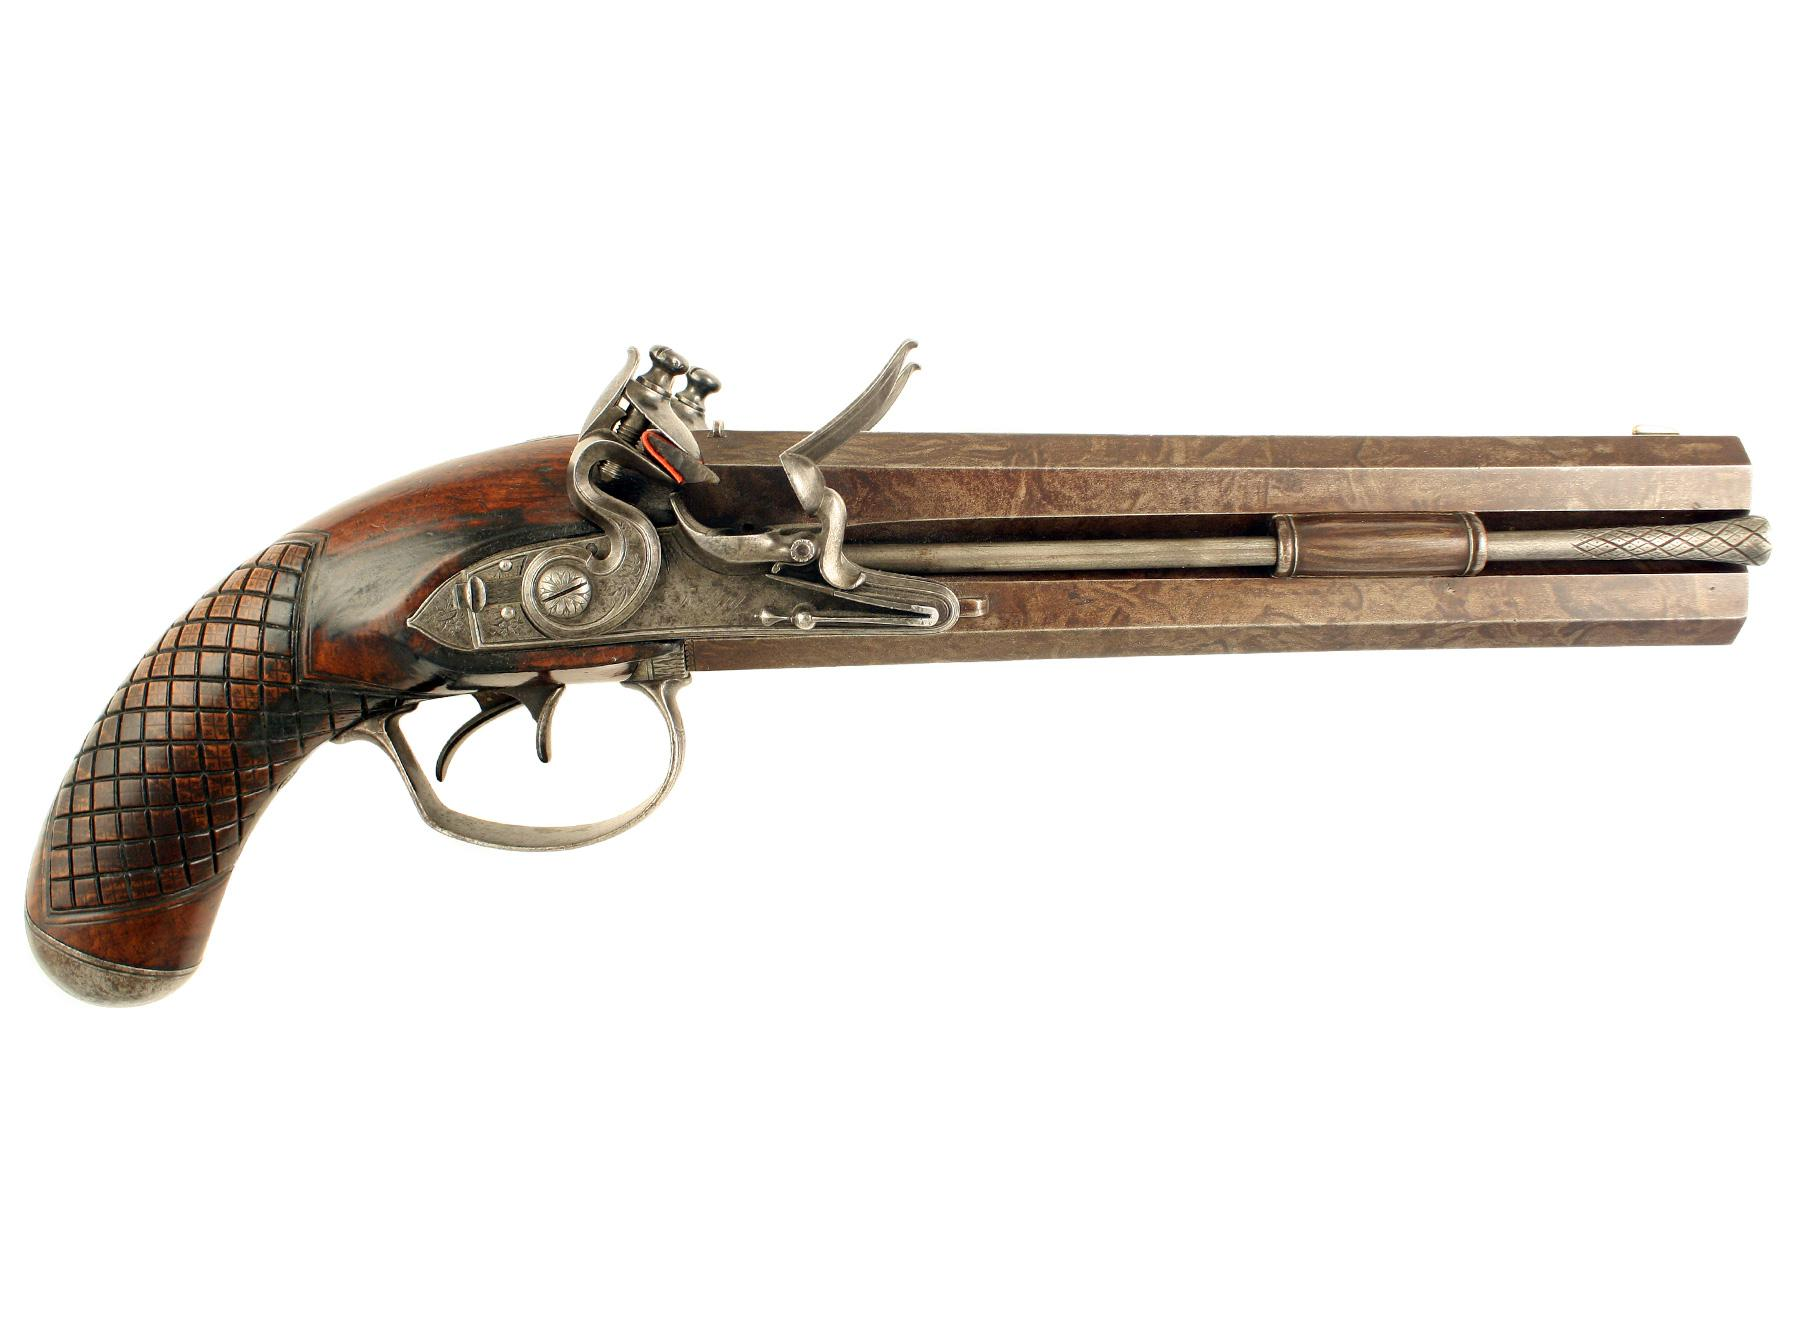 A Fine Flintlock Over & Under Pistol